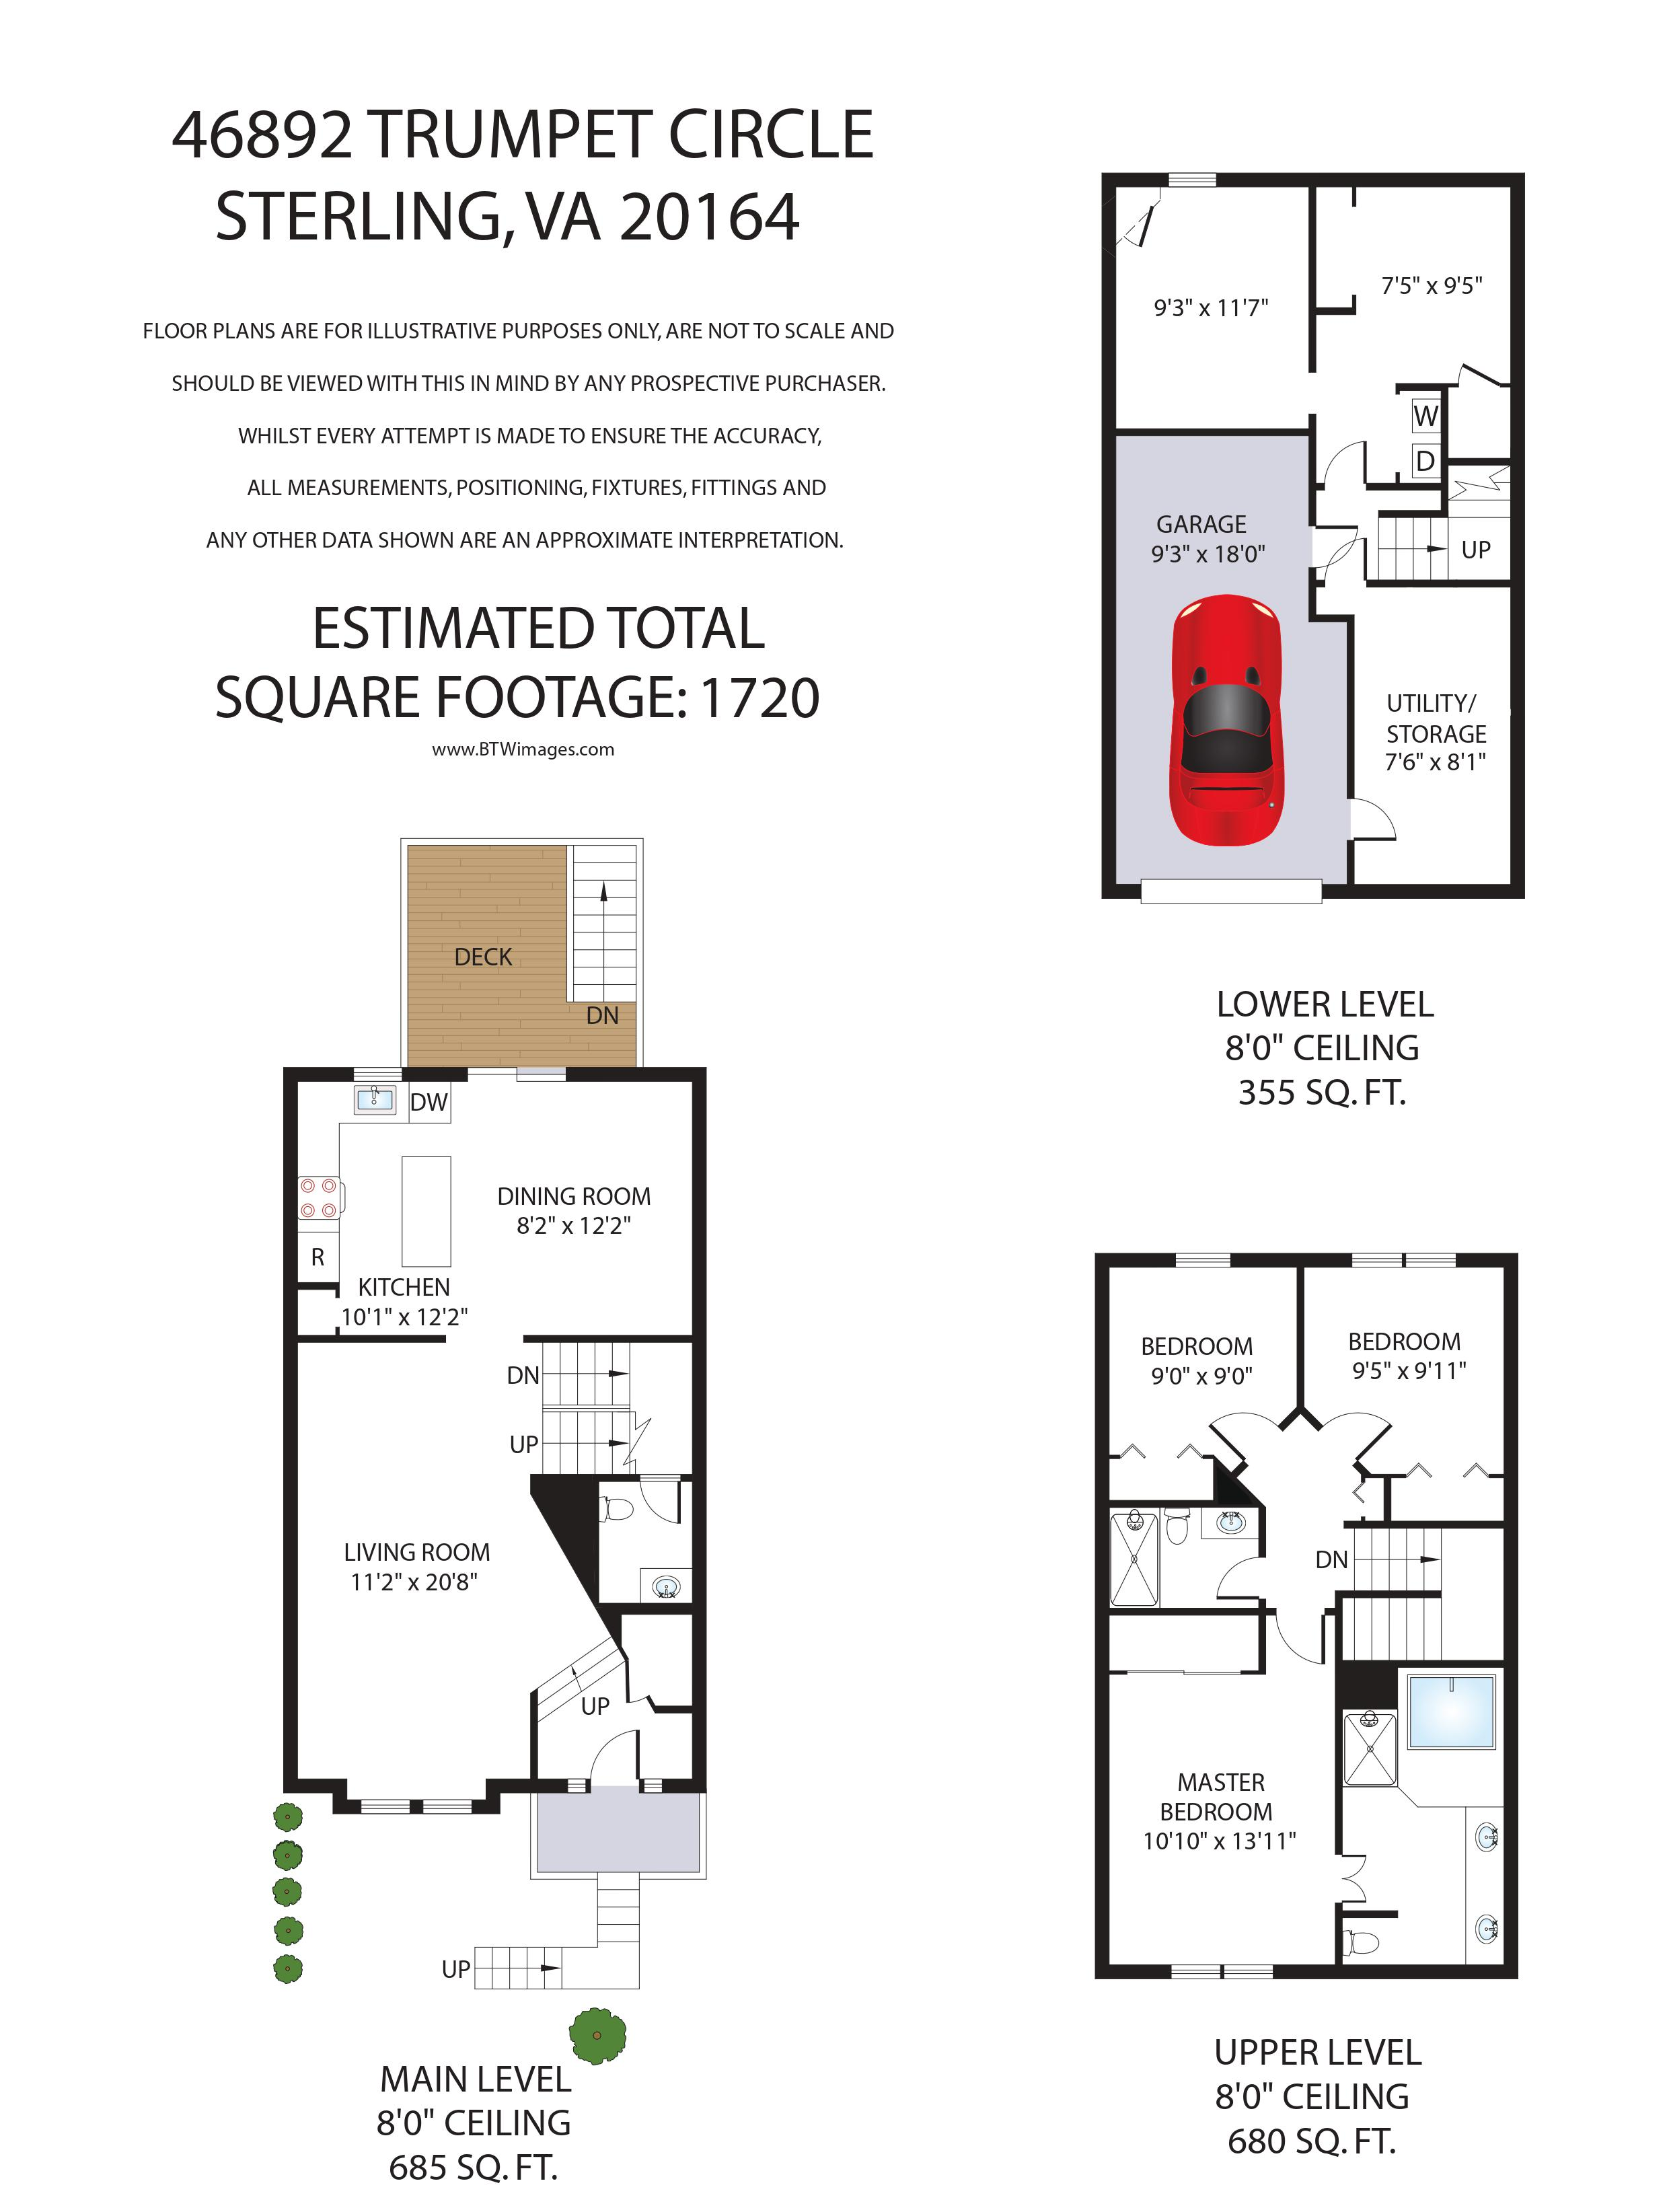 46892 Trumpet Cir_Sterling_Floorplan